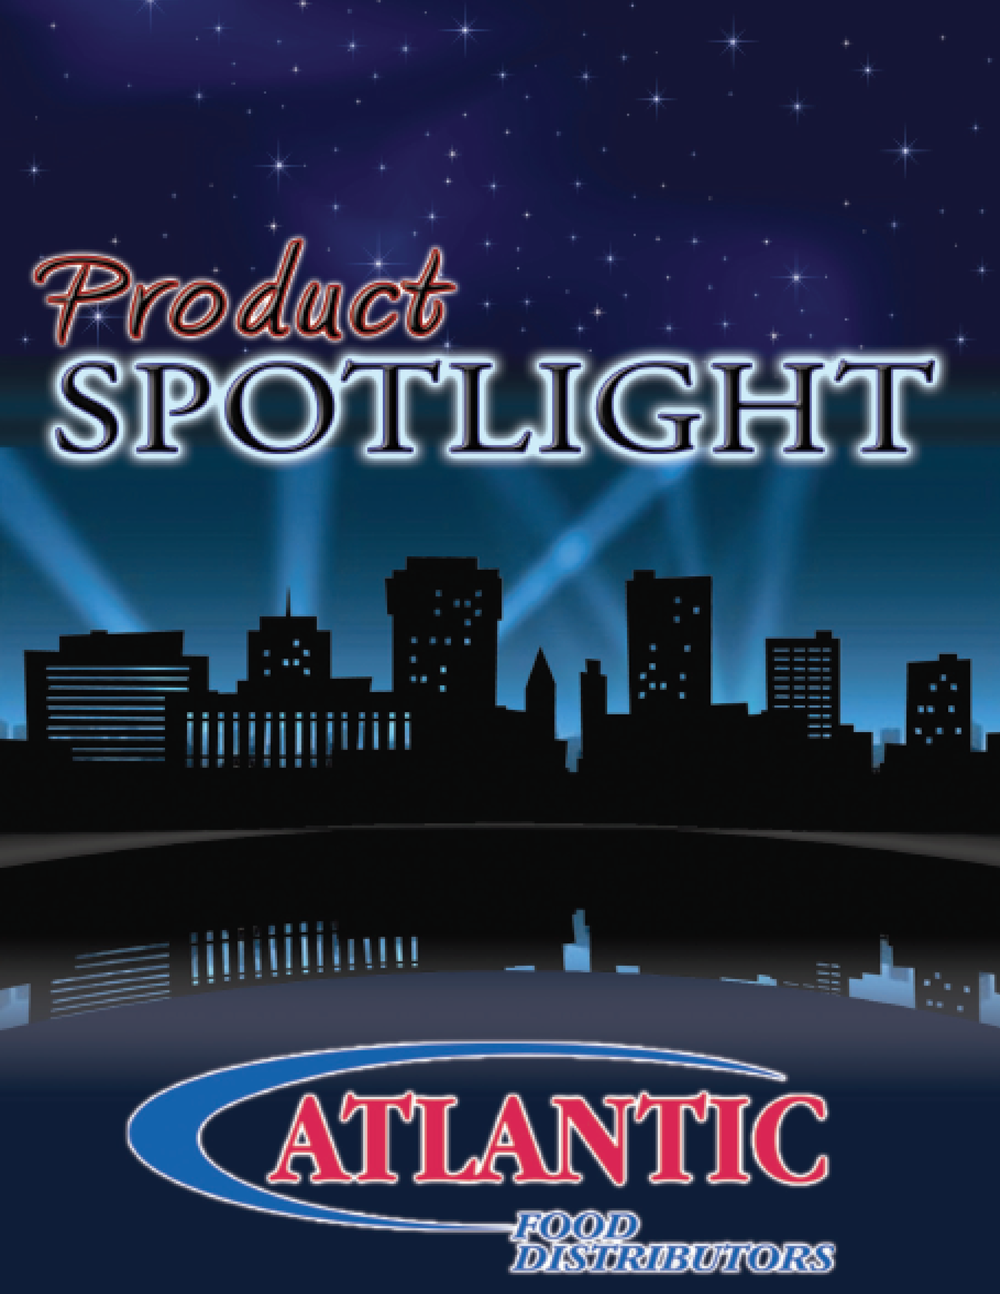 Find all of this month's featured items advertised in our Product Spotlight Flyer. -